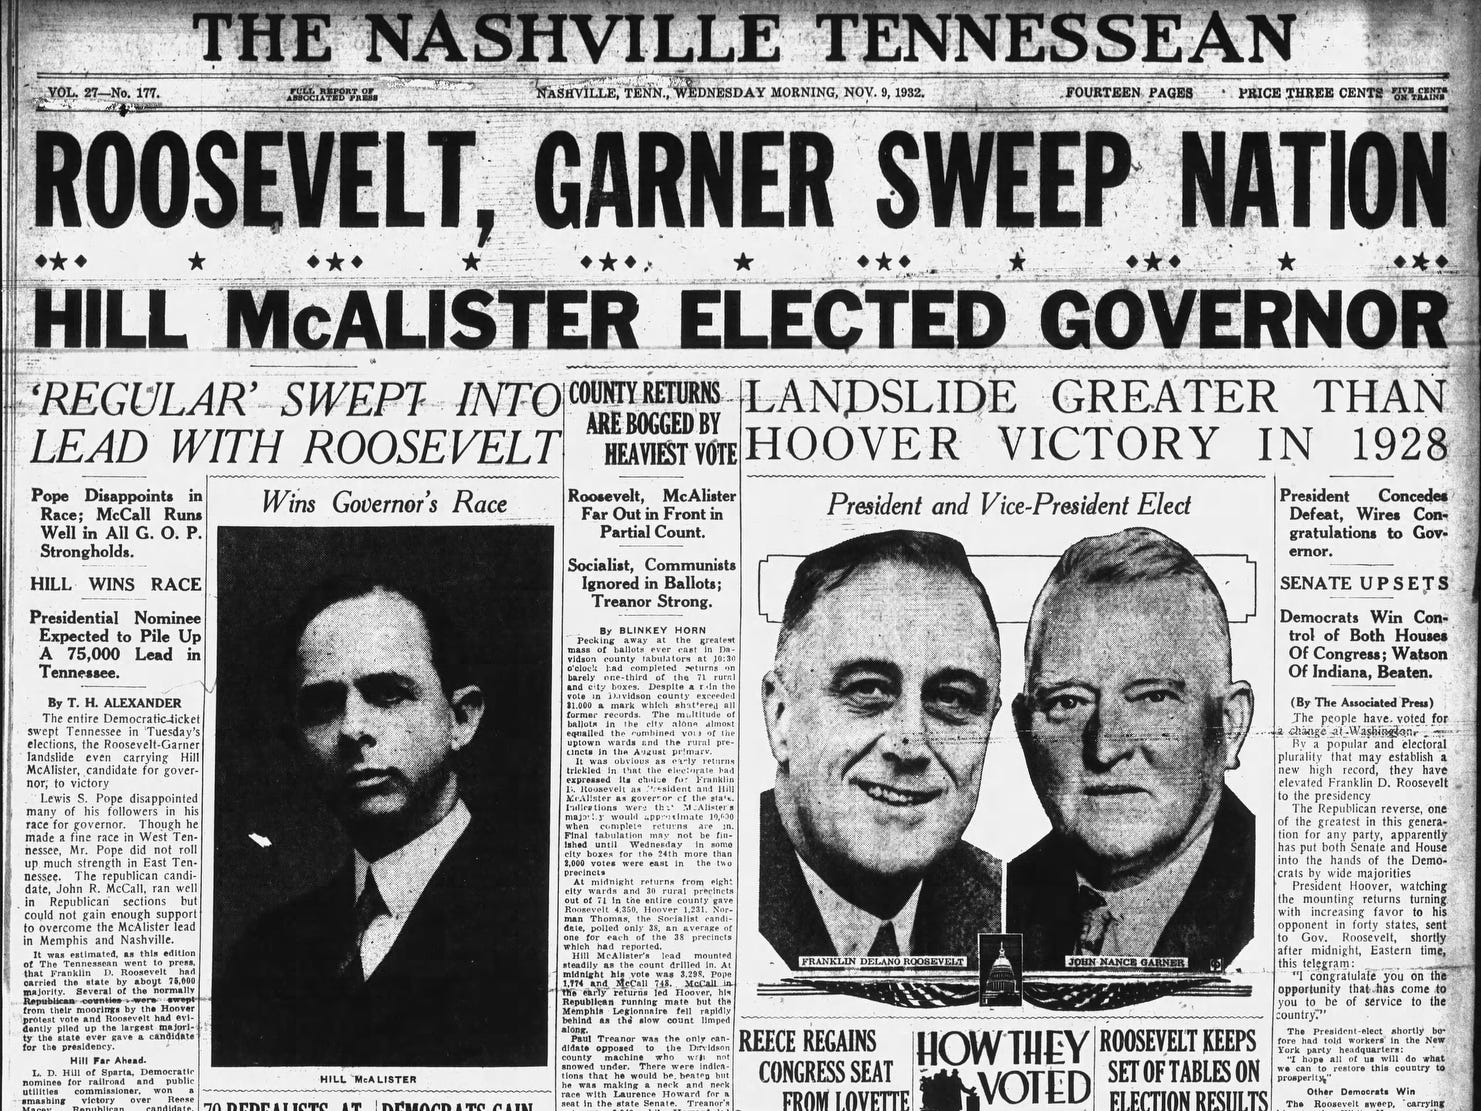 The front page of the Nov. 9, 1932 of The Tennessean which Franklin D. Roosevelt won the presidential election.